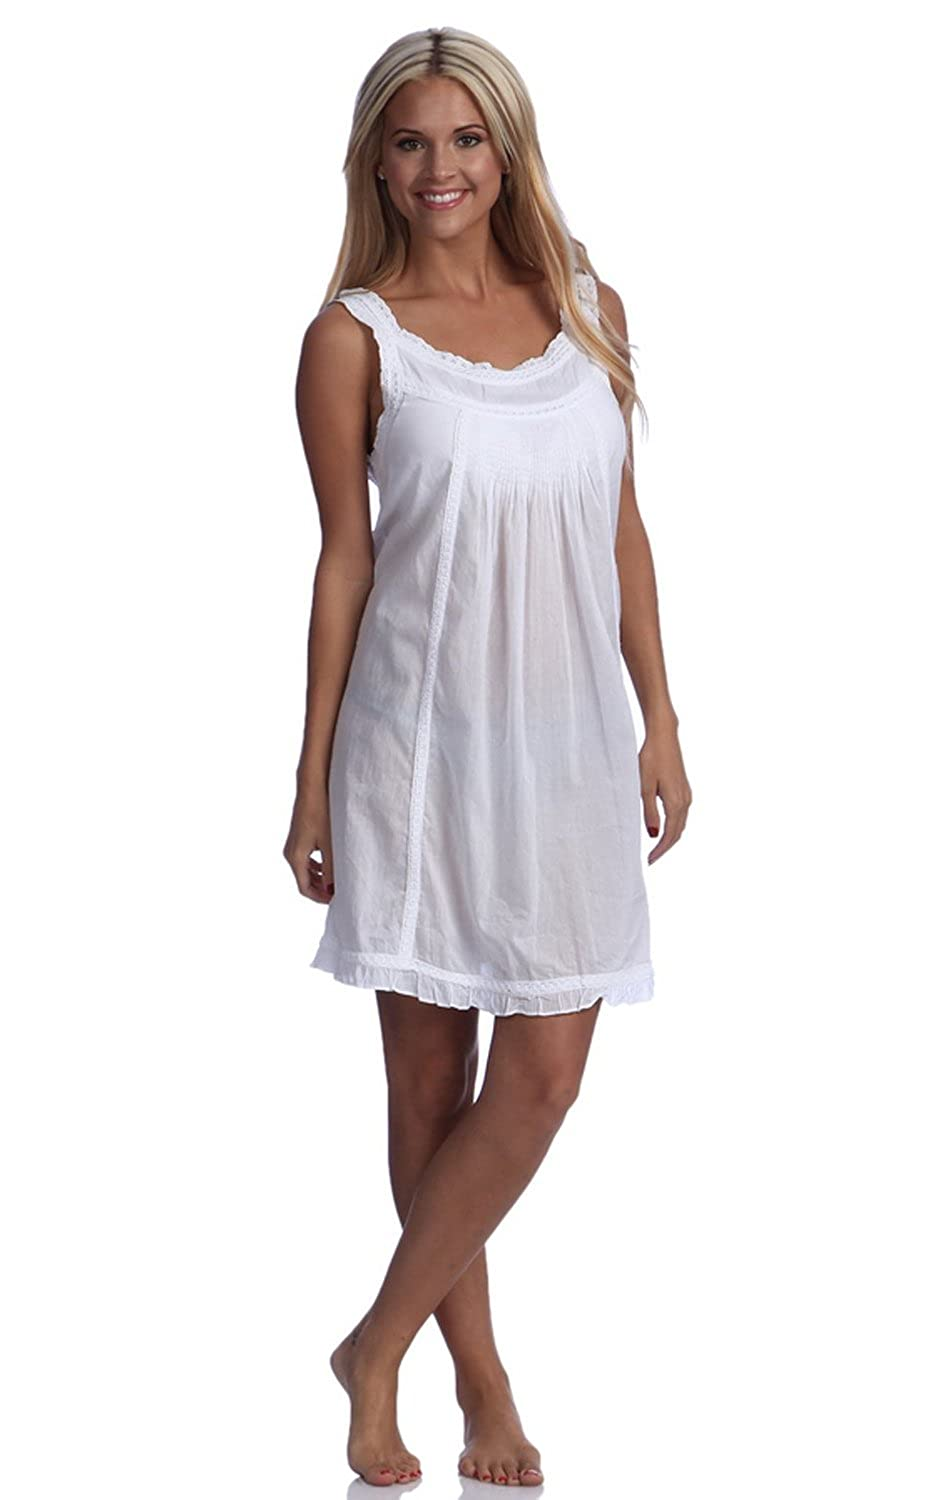 Handmade Embroidered Eyelet Sleeveless Lady Nightgown, 100% Cotton ...